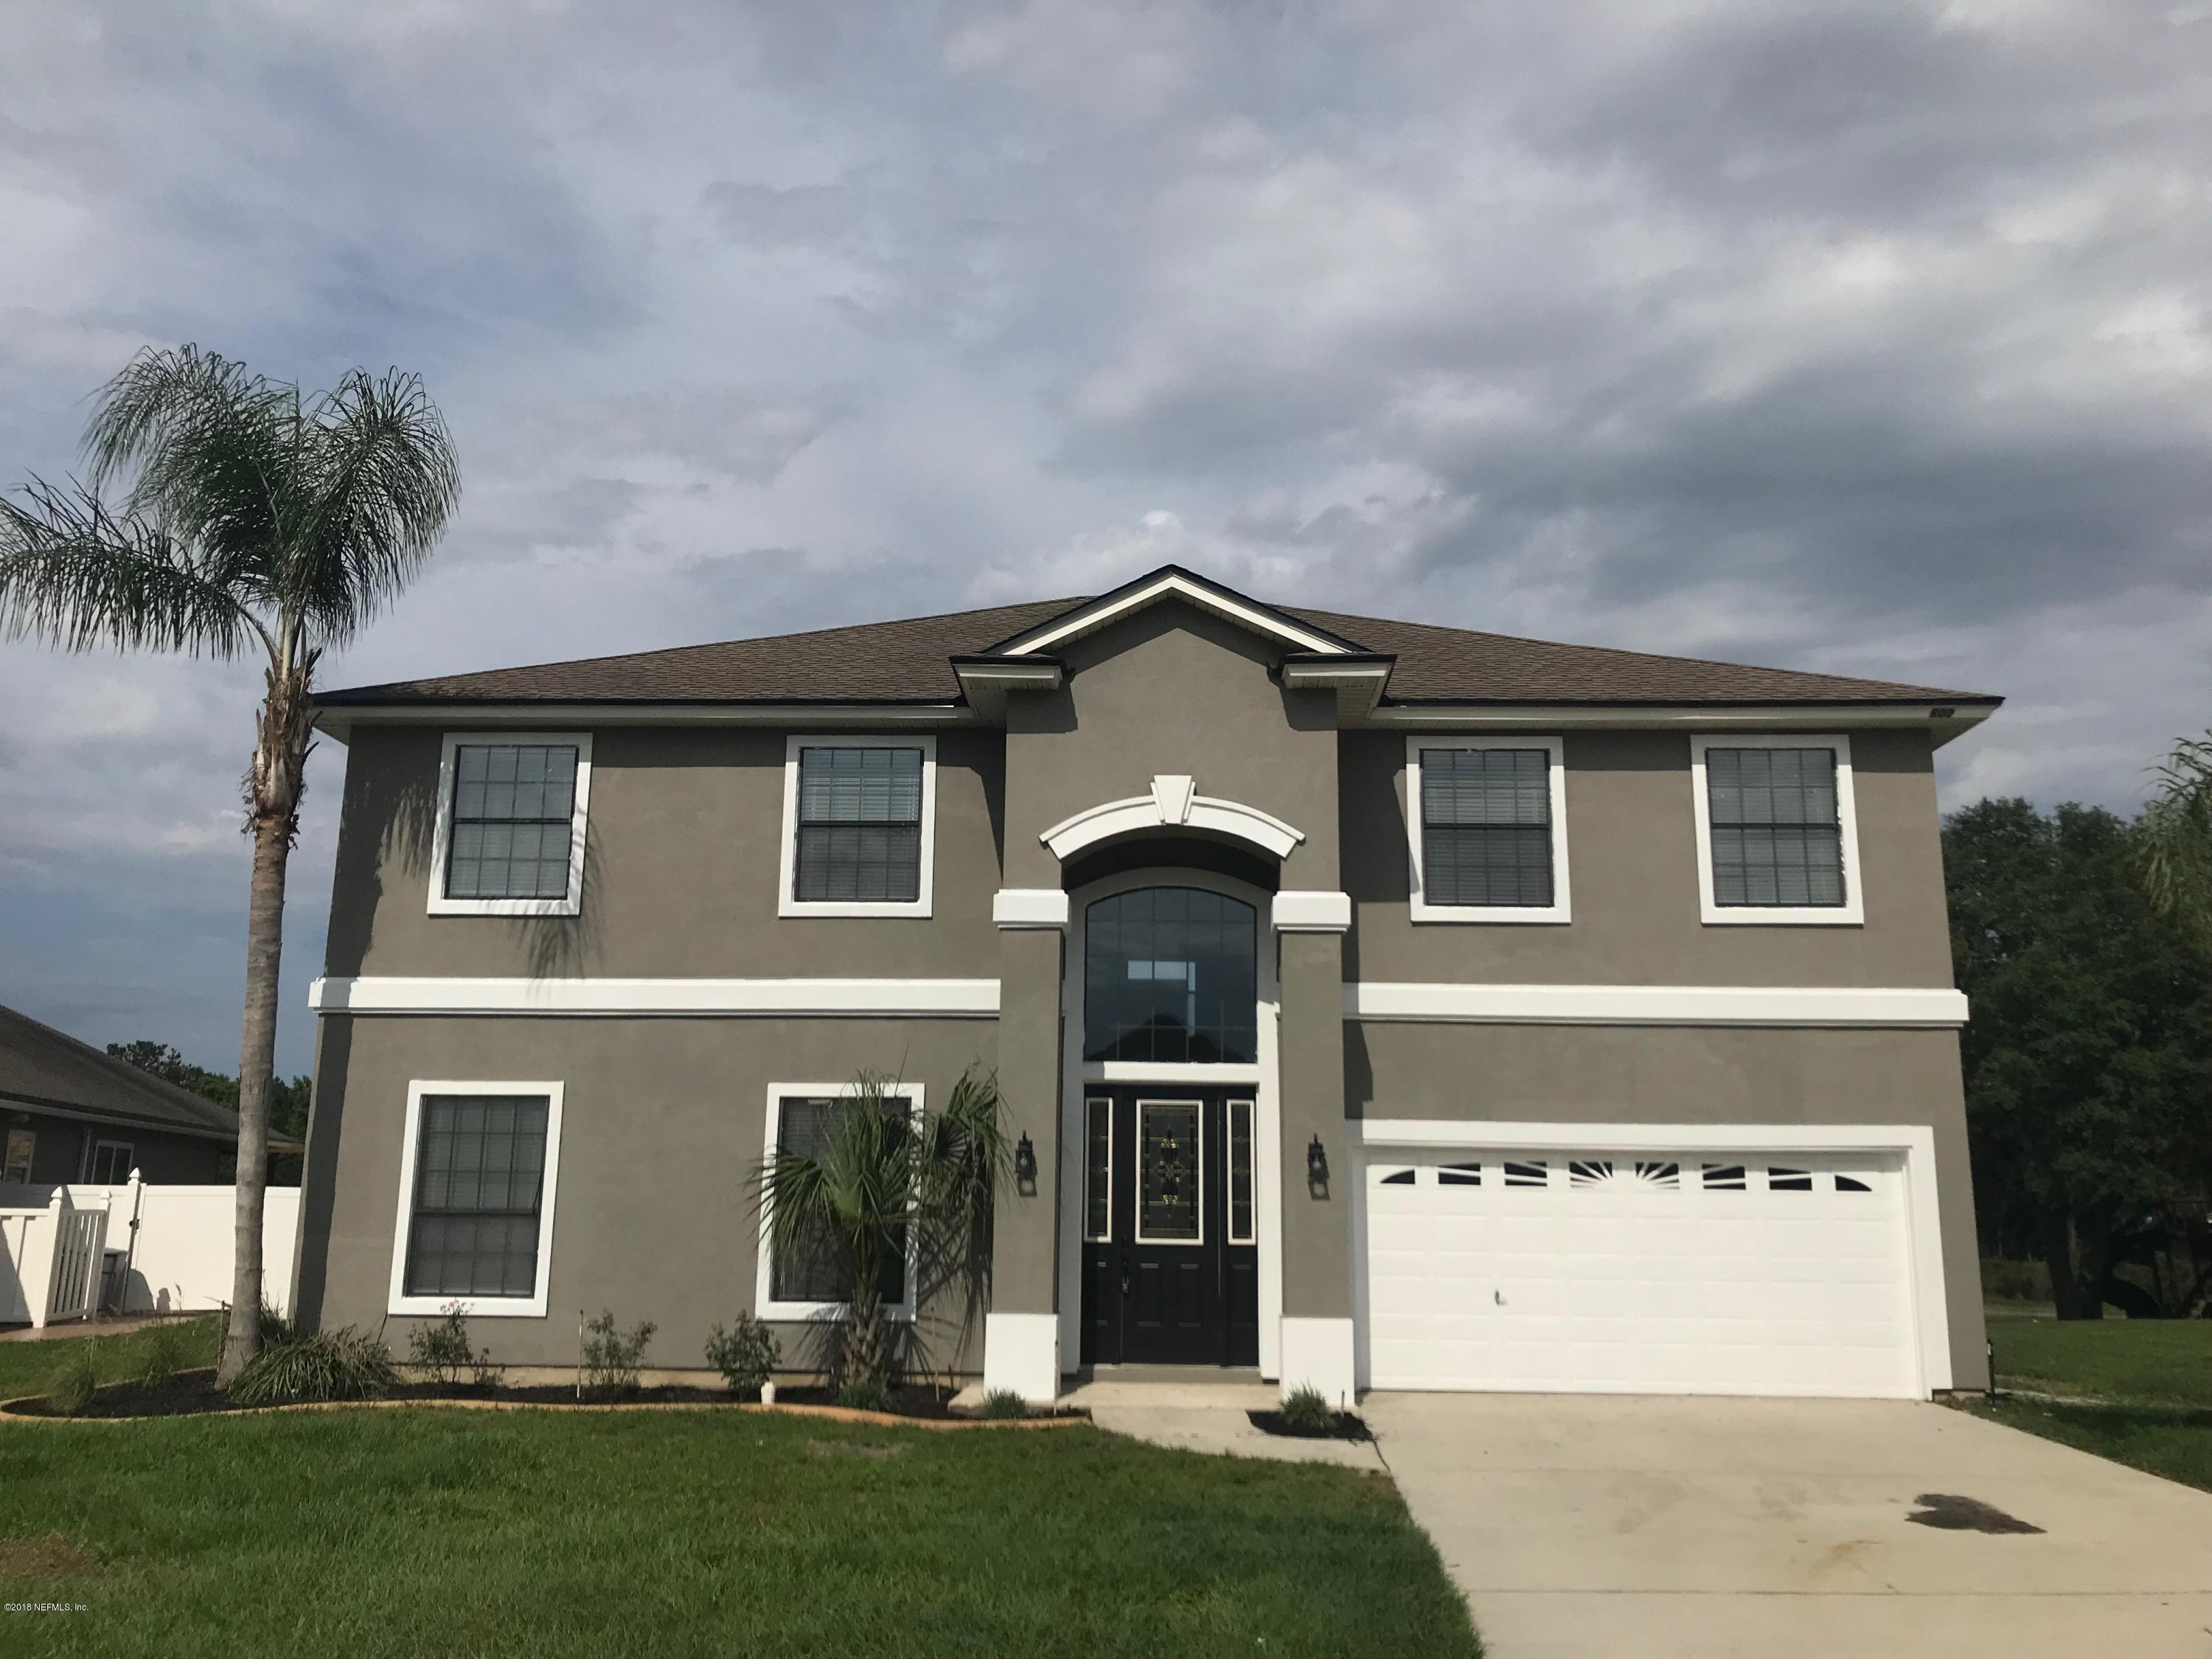 600 CHESTWOOD CHASE, ORANGE PARK, FLORIDA 32065, 5 Bedrooms Bedrooms, ,3 BathroomsBathrooms,Residential - single family,For sale,CHESTWOOD CHASE,940468